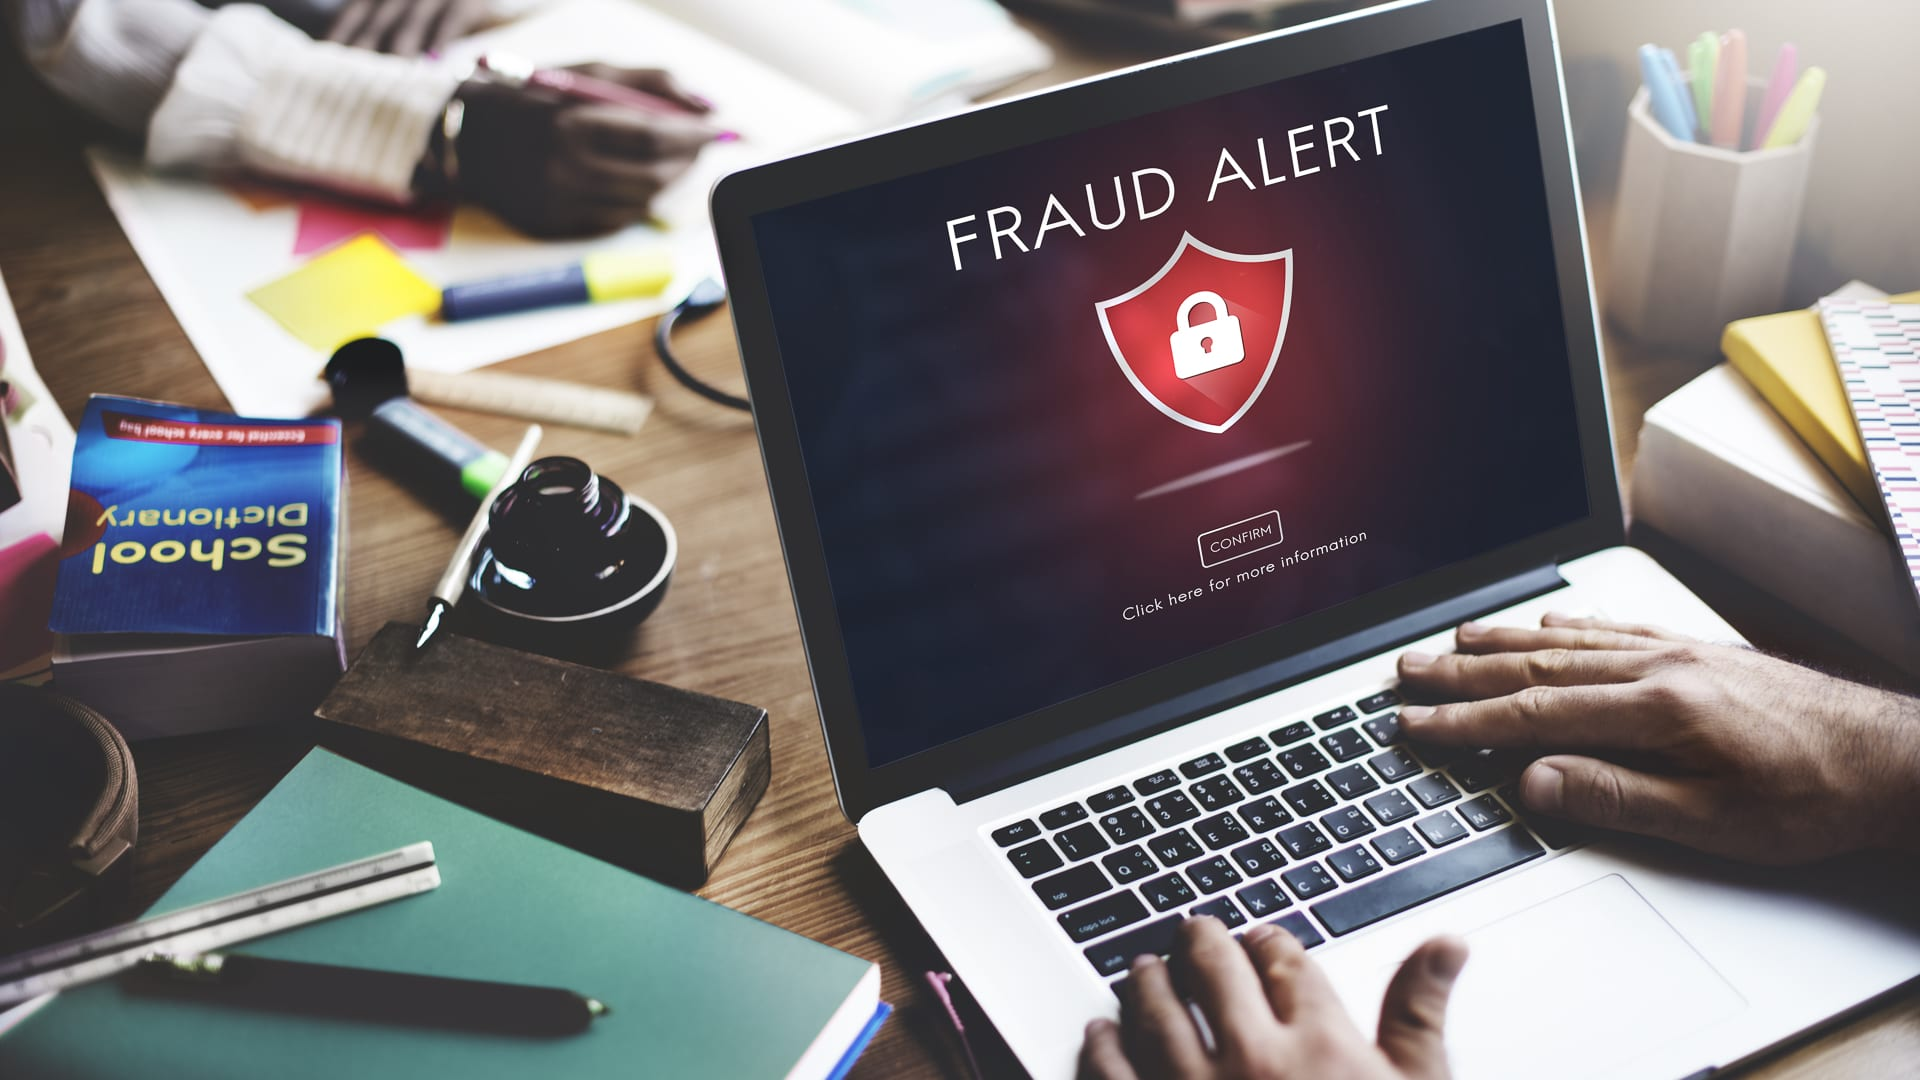 Fraud Alert For Card Owner – What You Should Know?